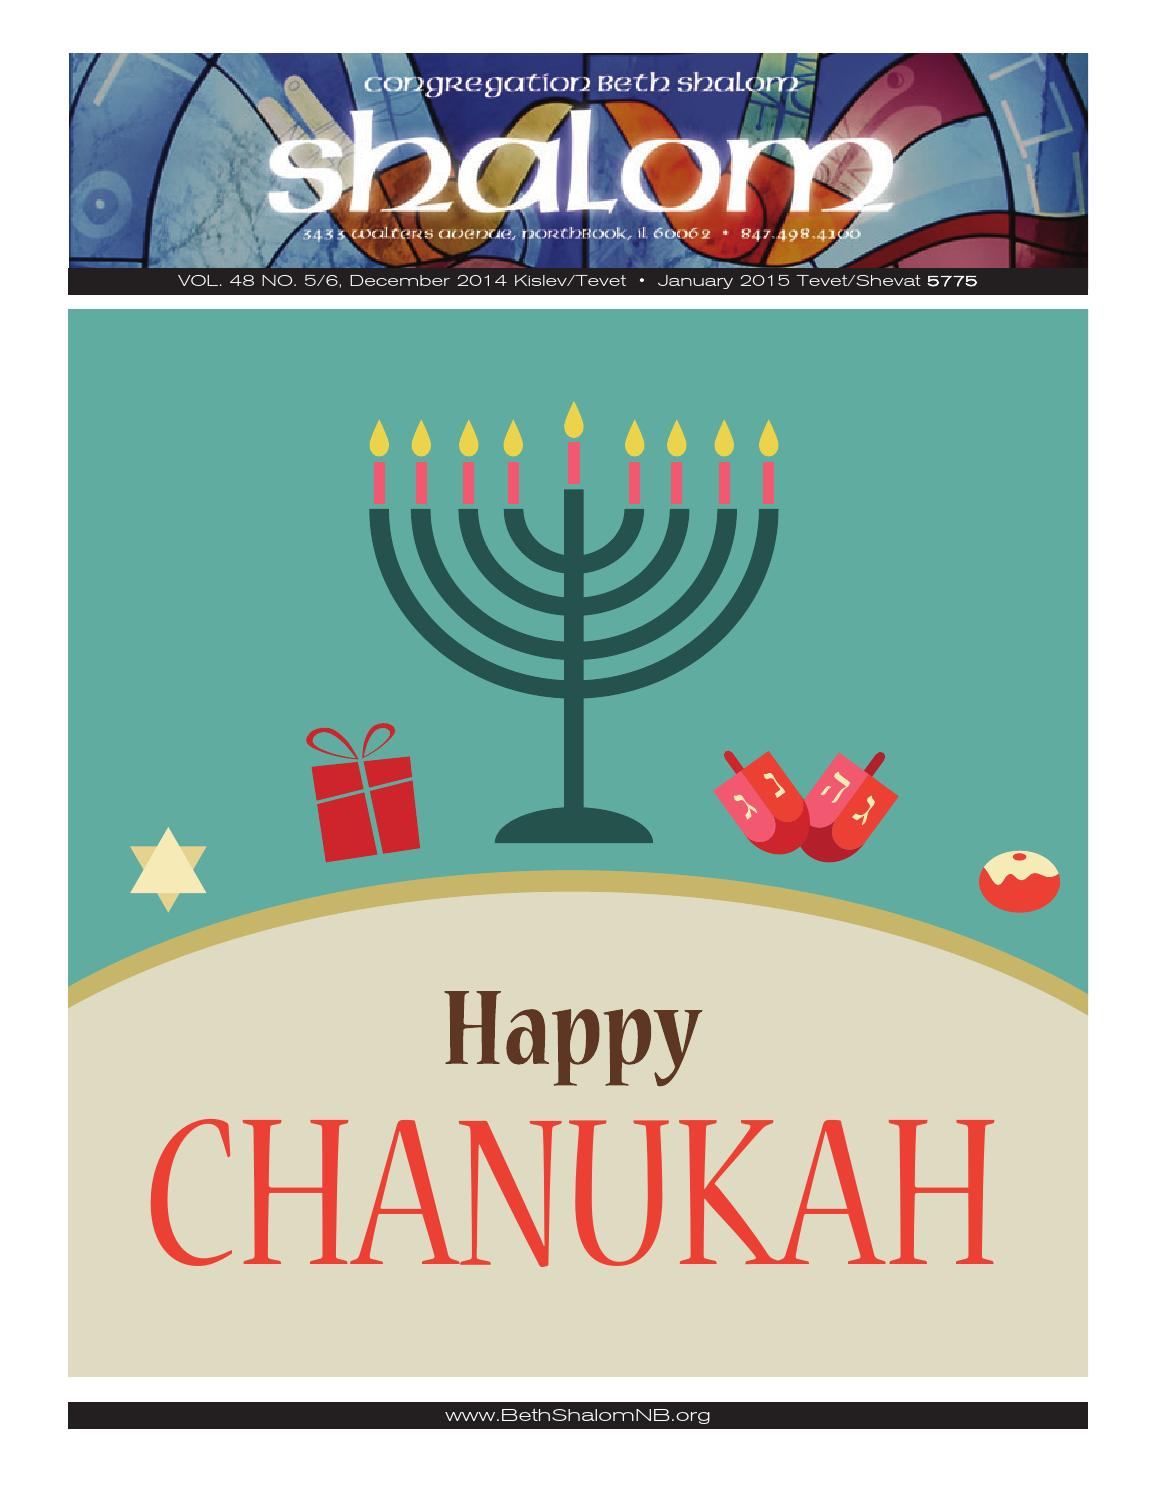 Congregation Beth Shalom Dec 14 Jan 15 By Dfriedman Issuu